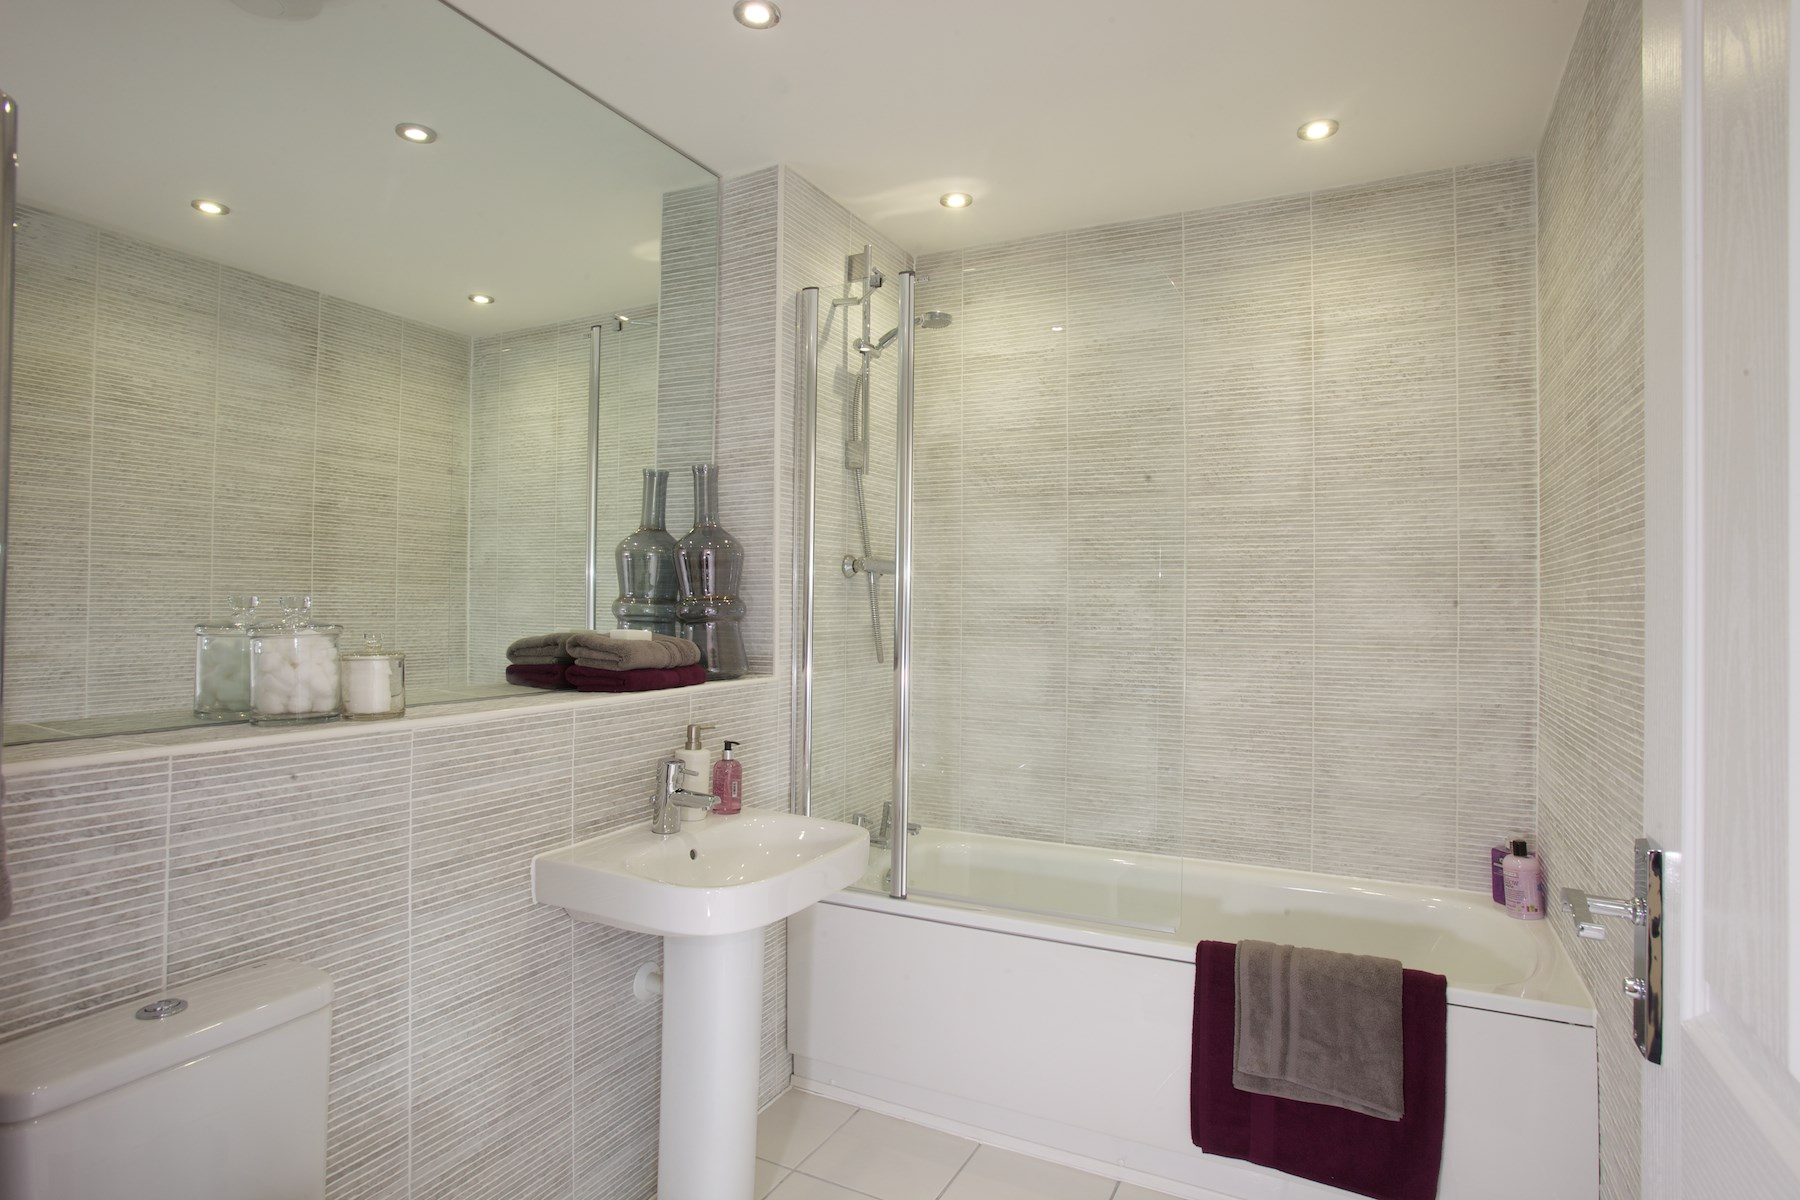 Kings Copse show home - Bathroom